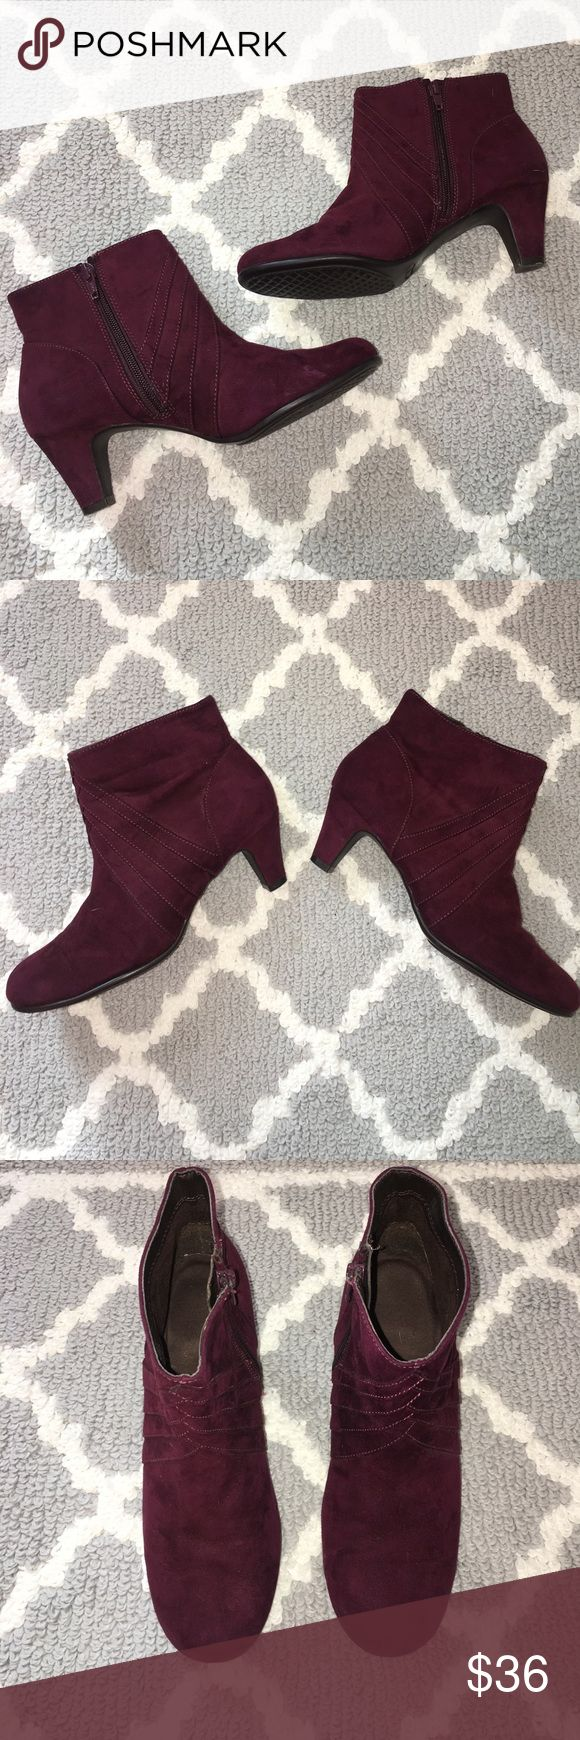 A2 Aerosoles wine burgundy zip booties A2 Aerosoles wine burgundy zip booties | size S | inside zipper | heel measures approximately 2.25"